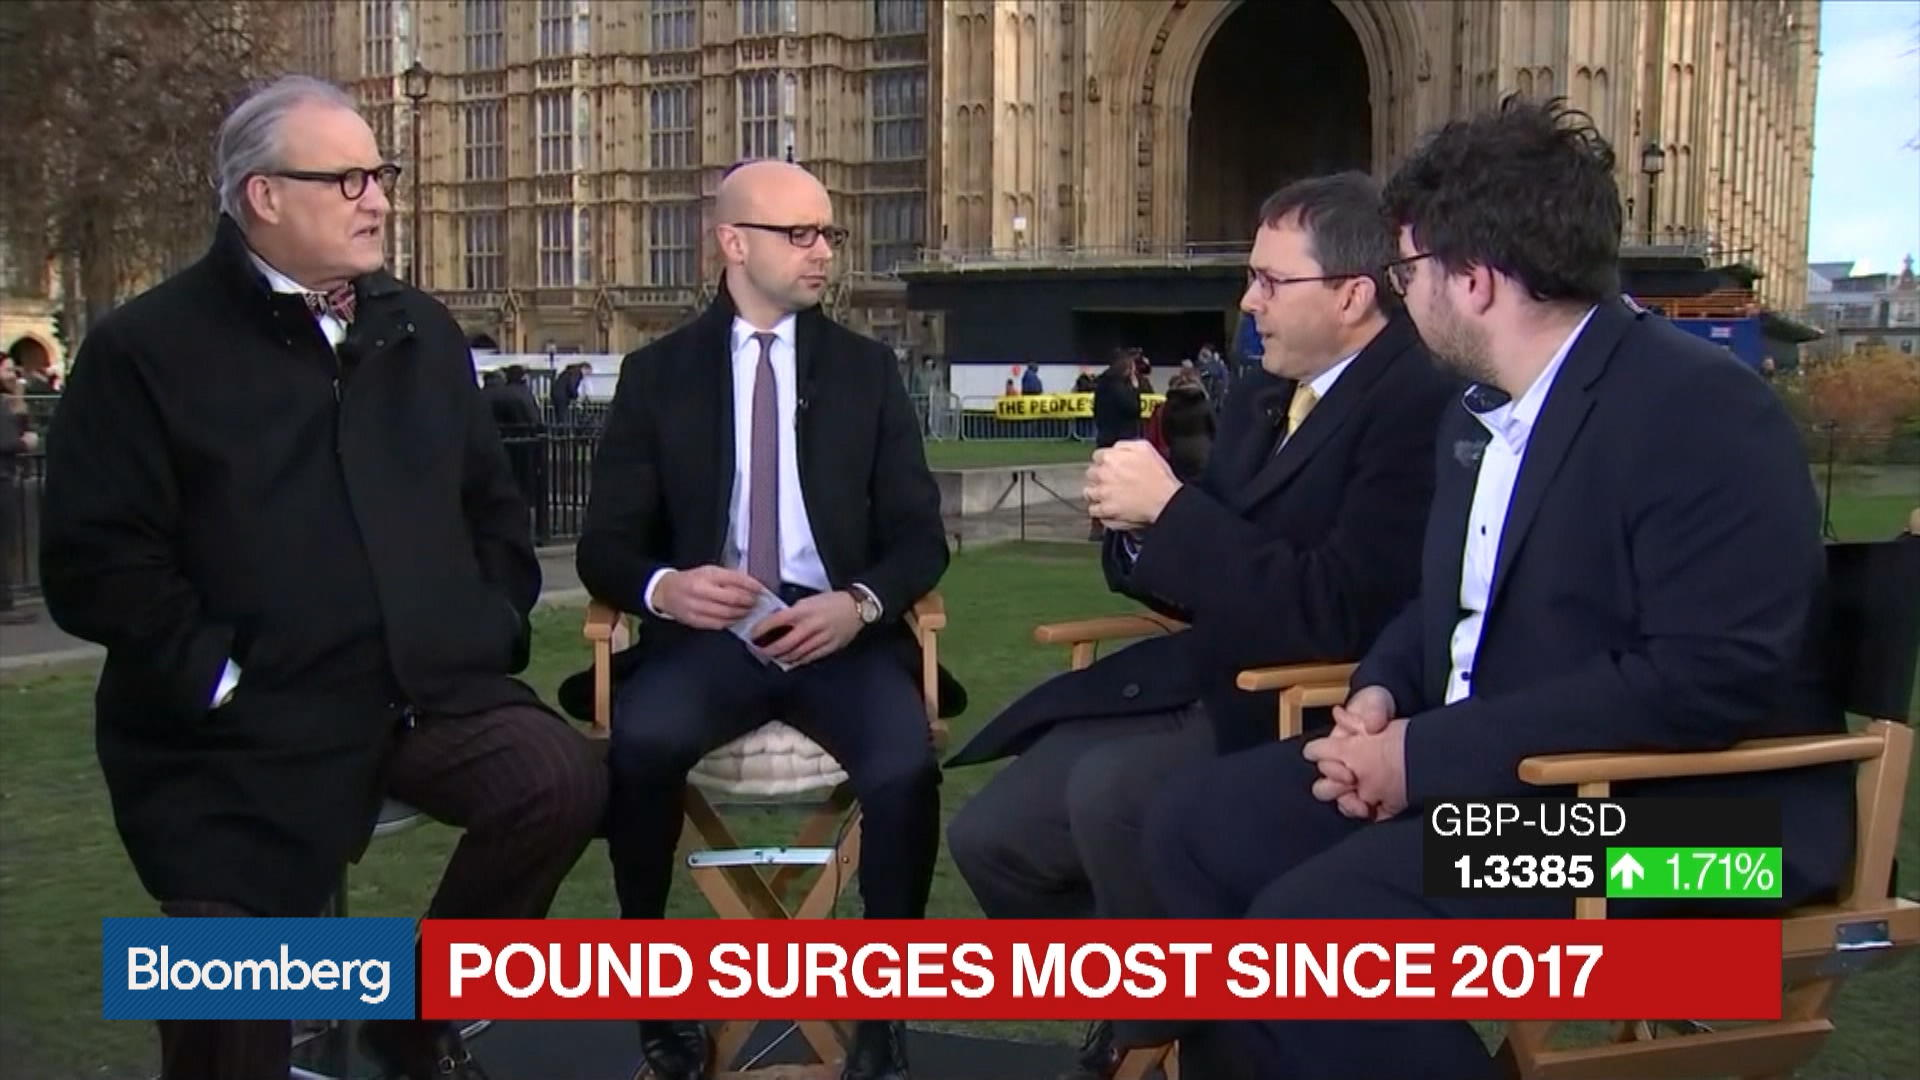 'Bloomberg Surveillance' - (11/13/2019) - Coverage of the U.K. election - Part 2